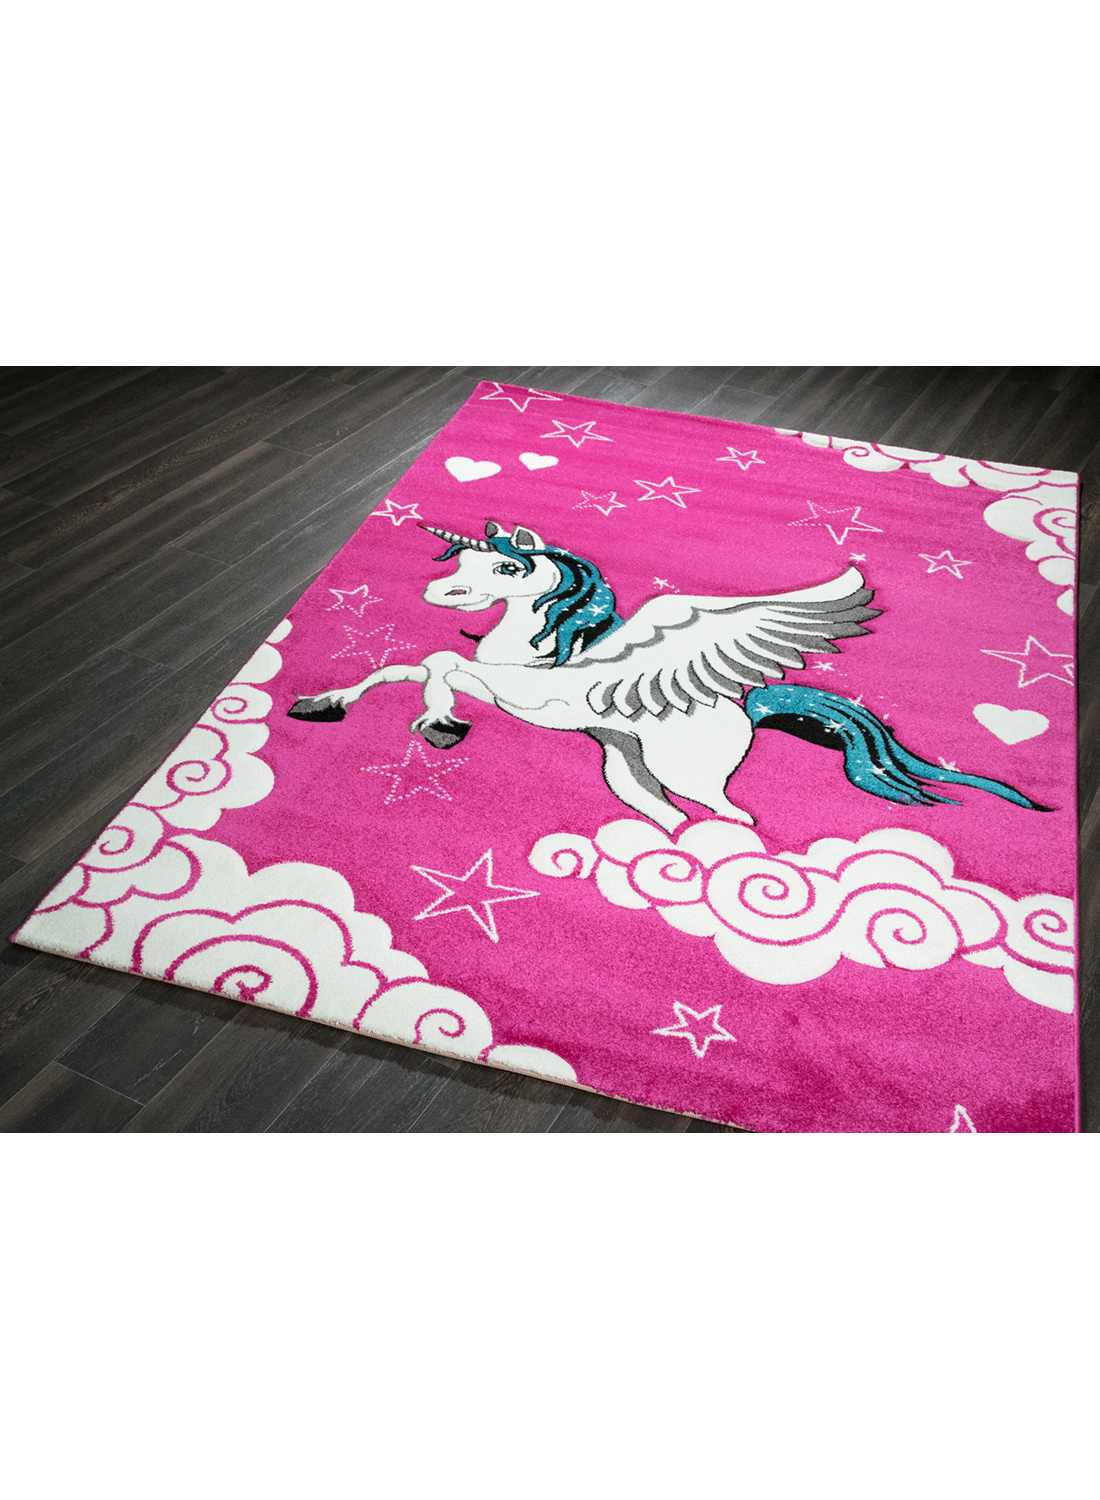 tapis fille rose finest tapis pour chambre duenfant rose birdy with tapis fille rose free. Black Bedroom Furniture Sets. Home Design Ideas